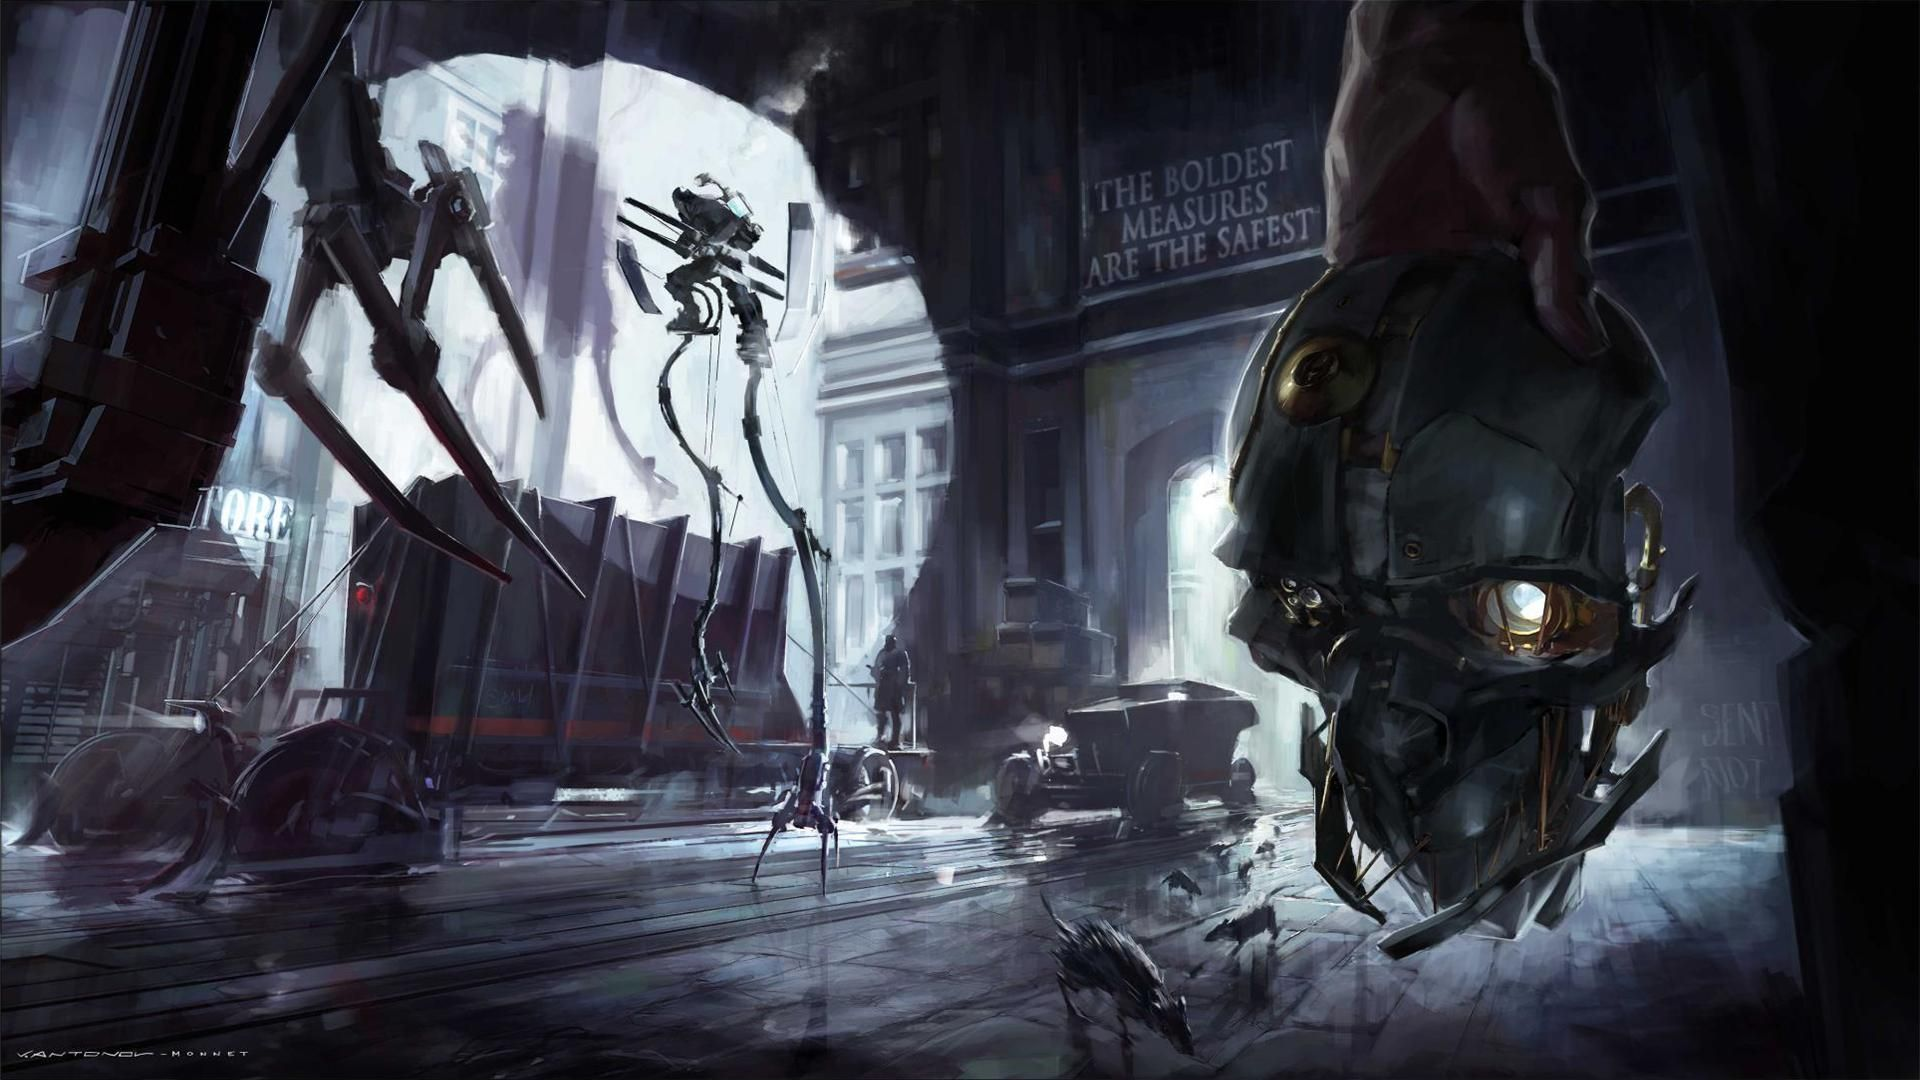 view, download, comment, and rate this 1920x1080 dishonored